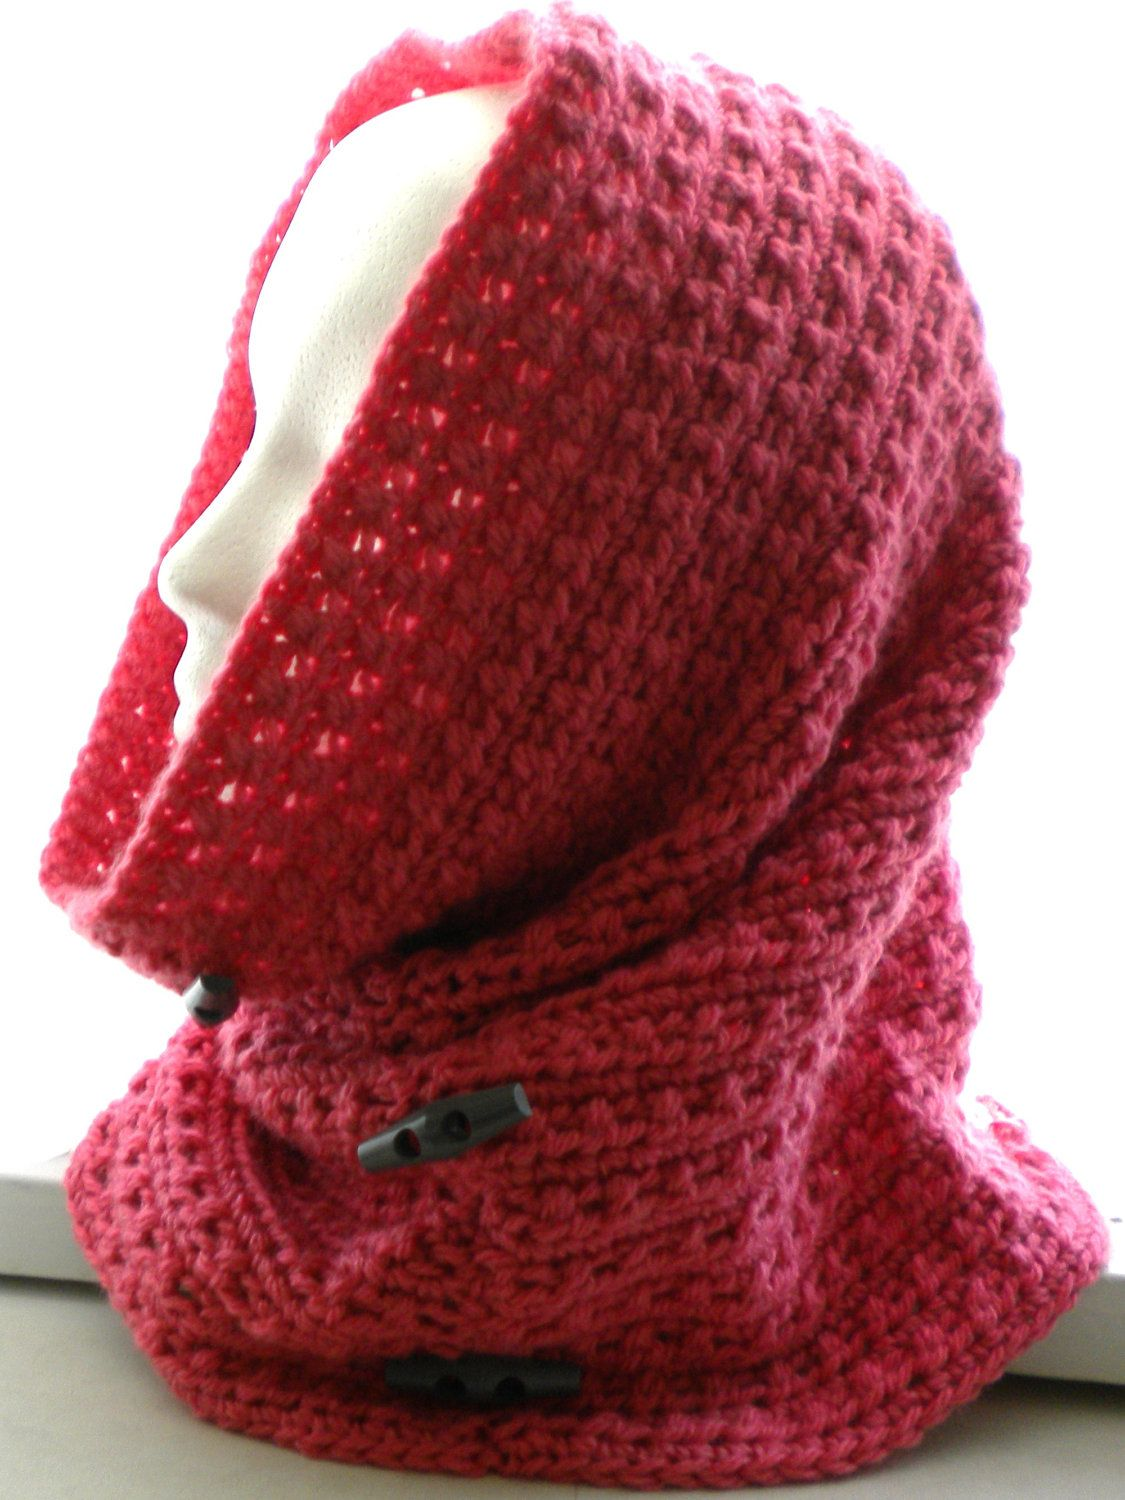 CROCHET COWL /Hood PATTERN with Decorative Buttons. $3.50, via Etsy ...